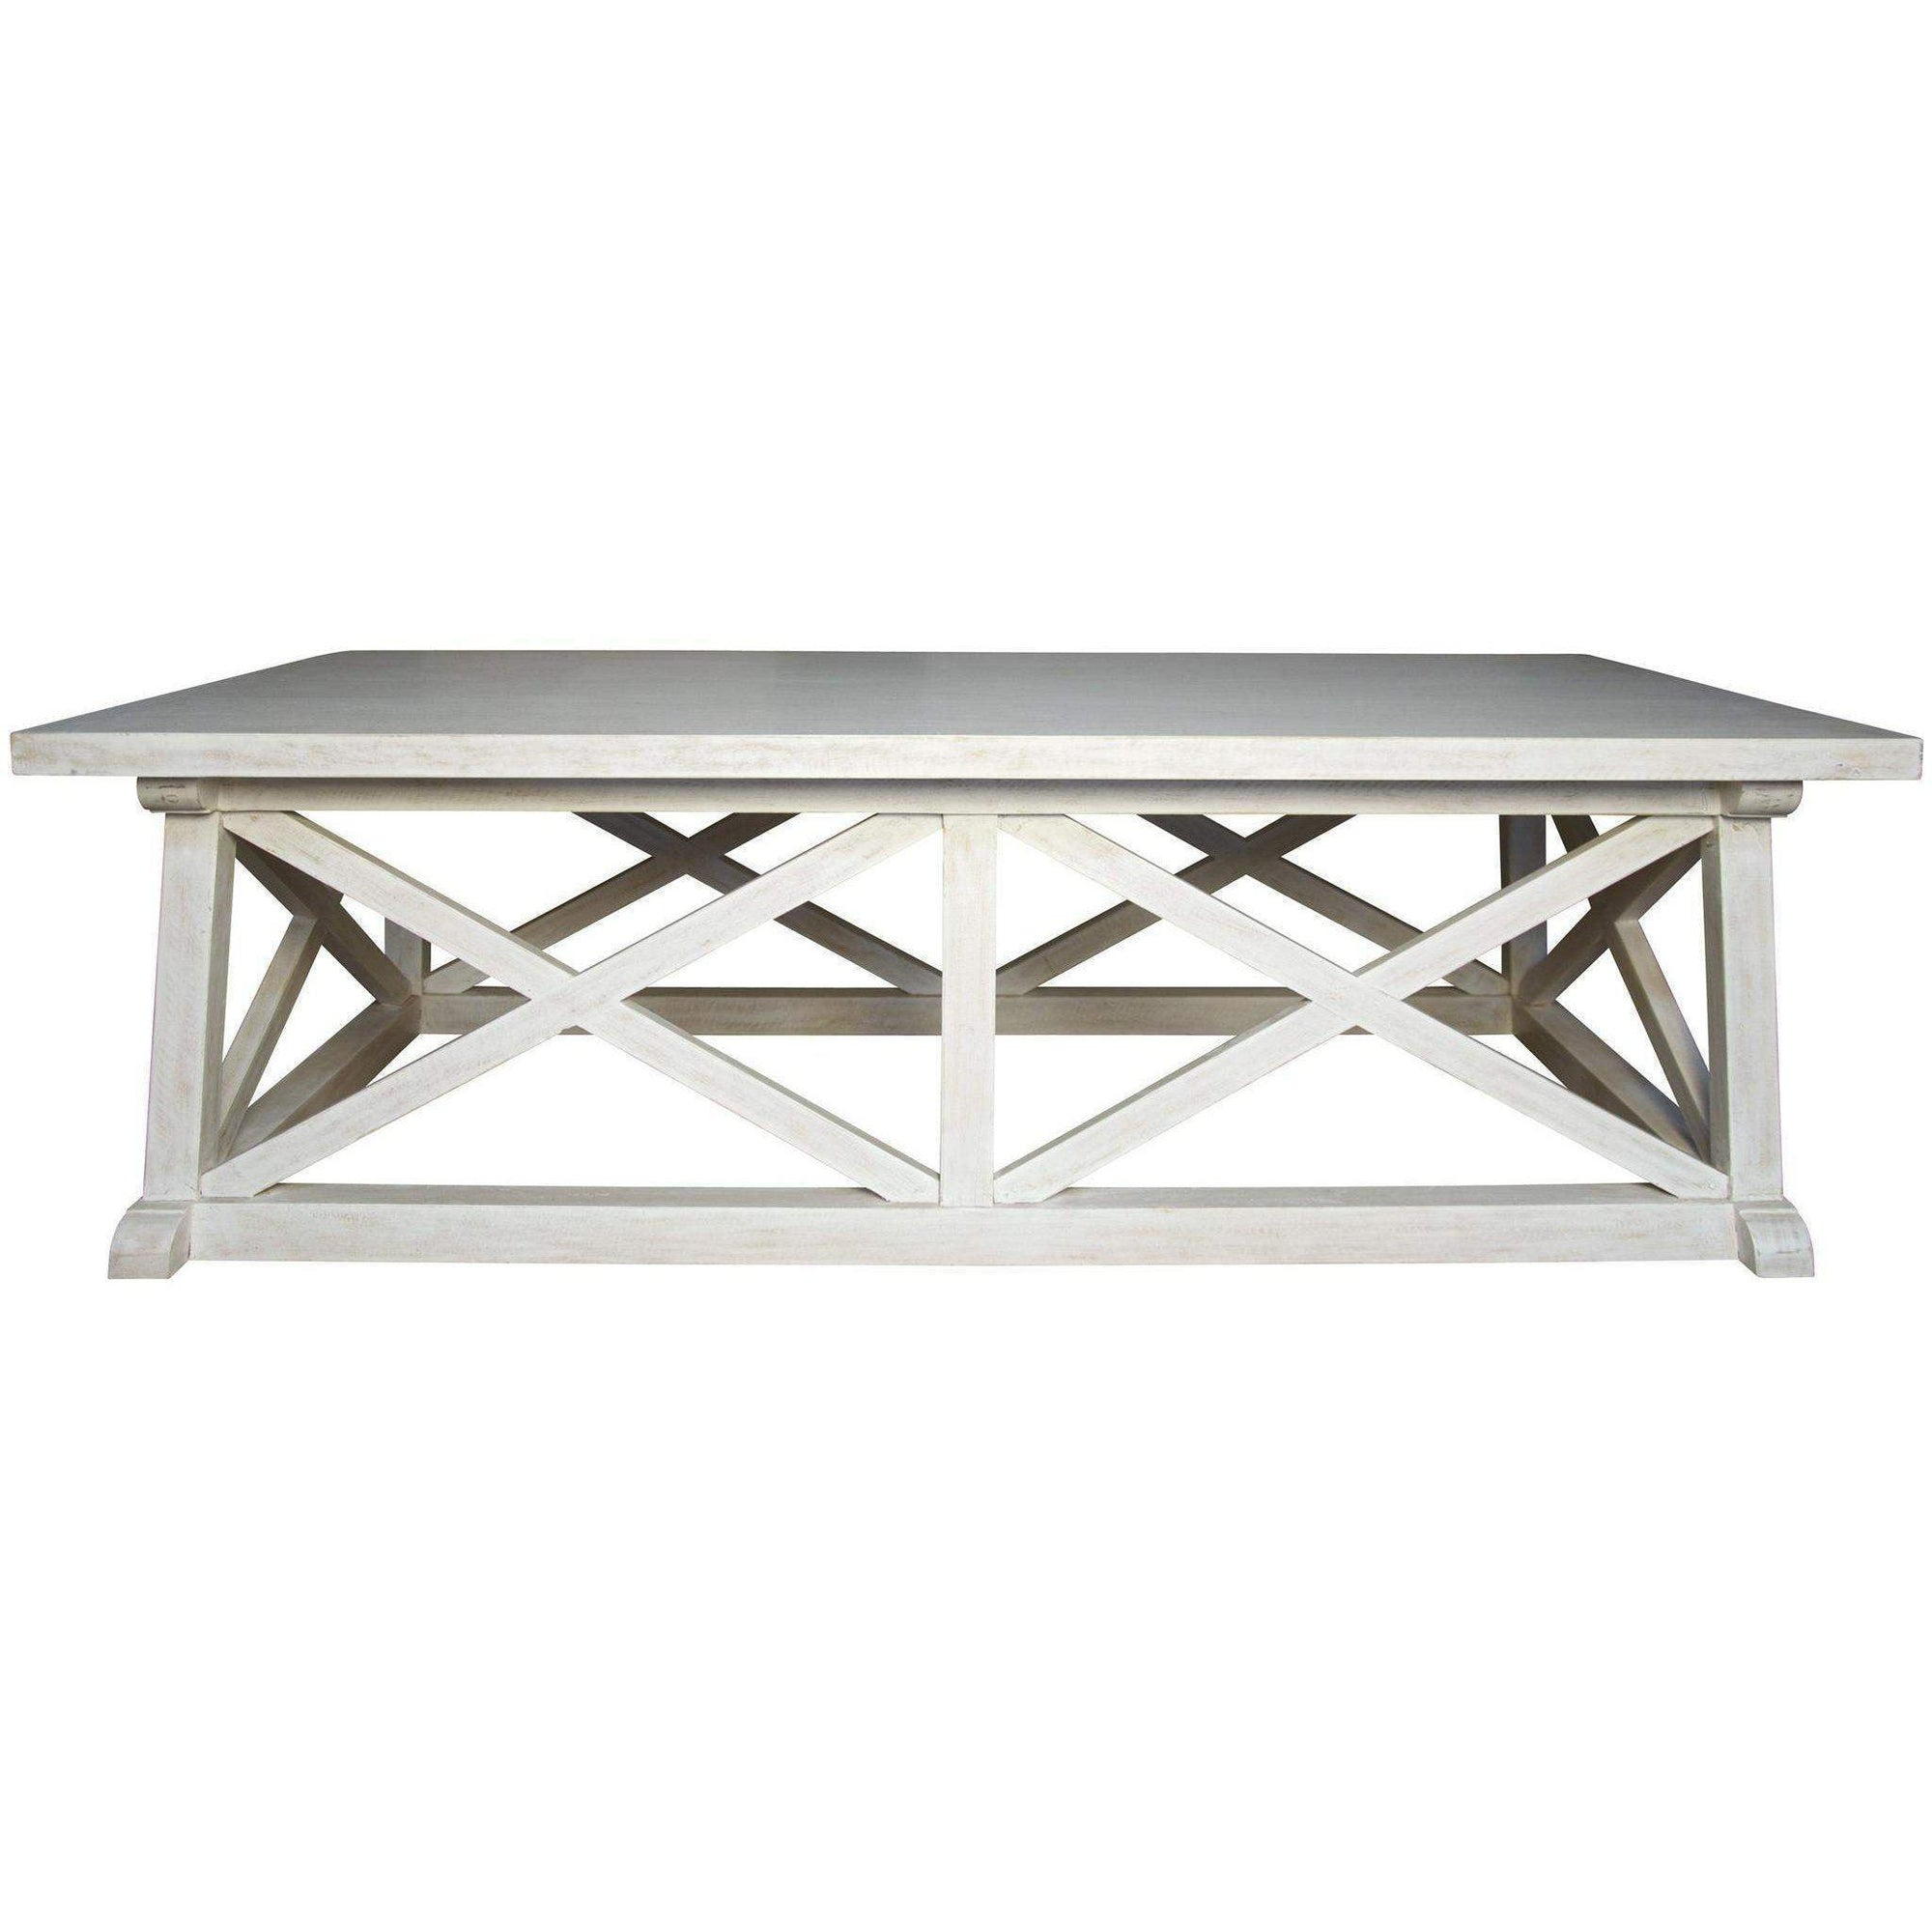 Shop Noir coffee tables at Blue Hand Home